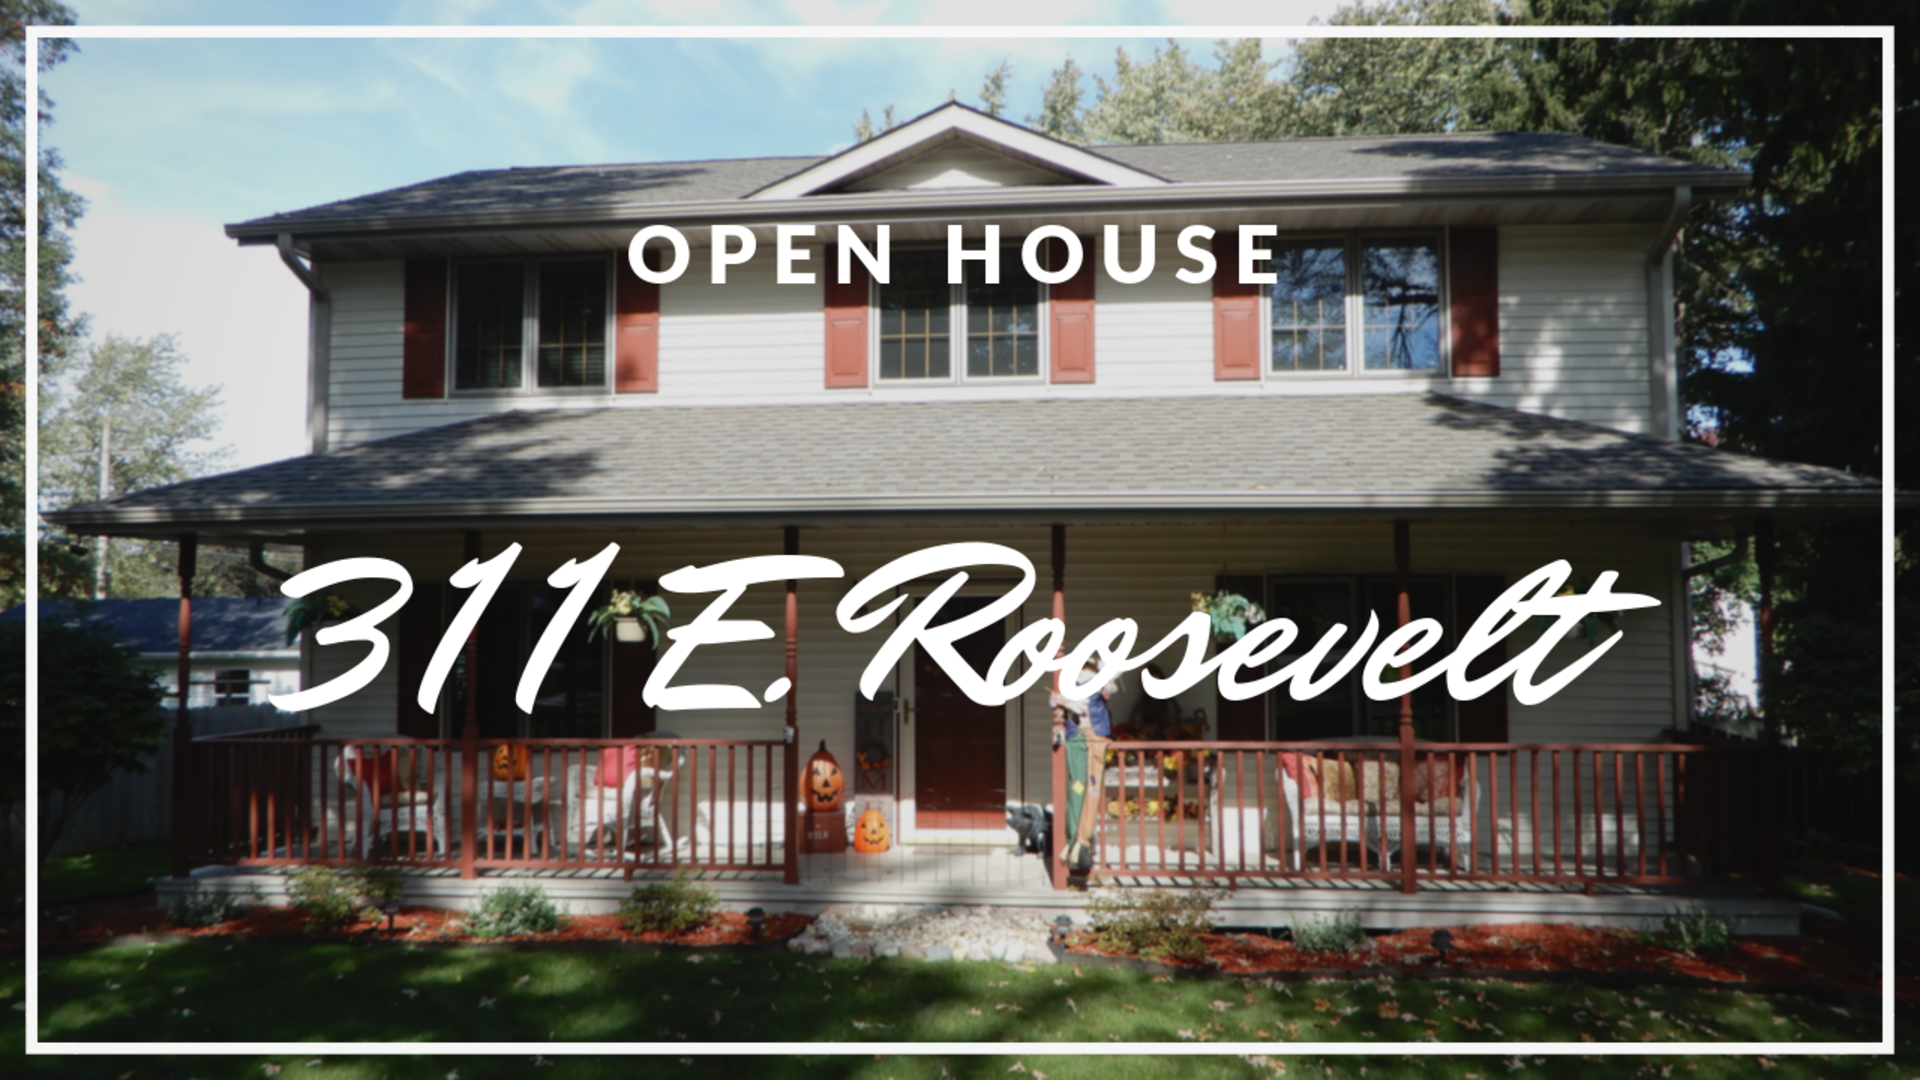 Open House: January 6th 2019